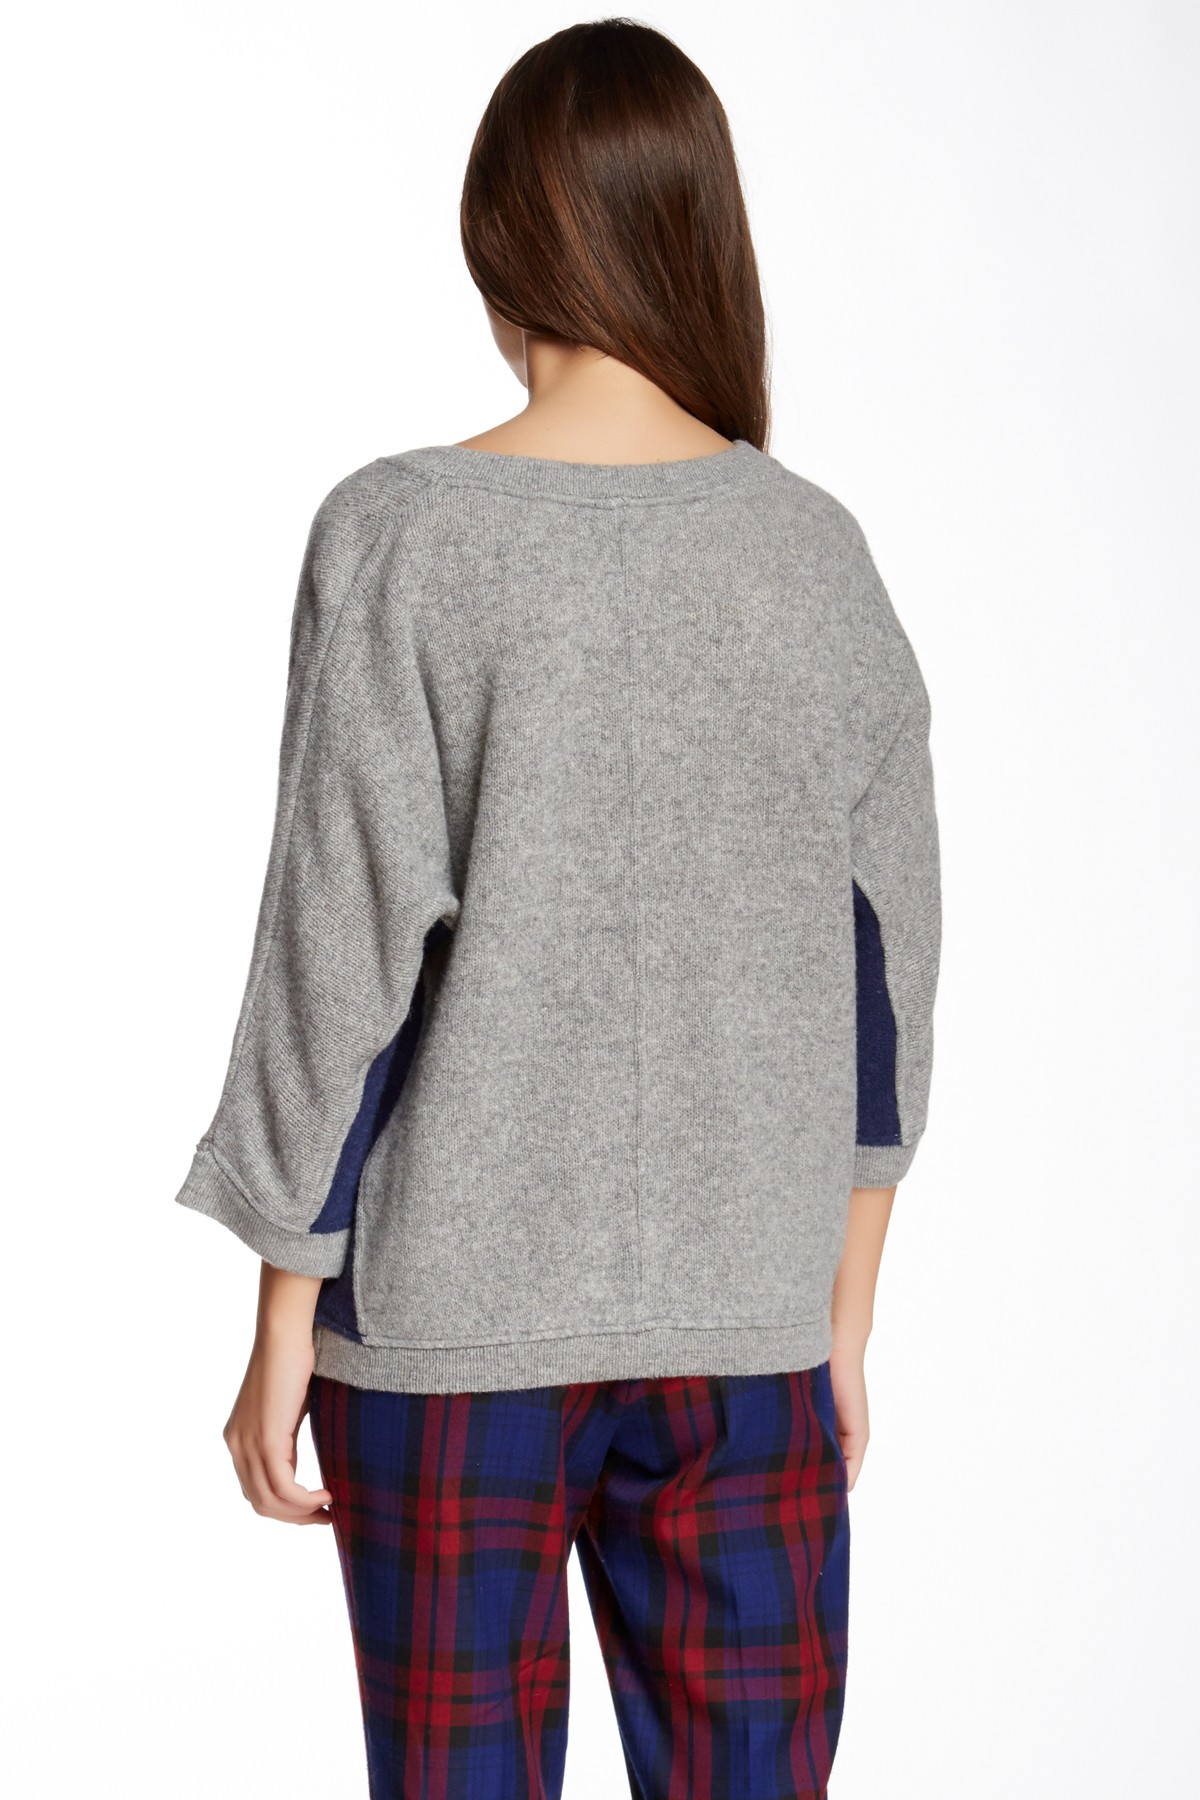 Lyst - Shae V-neck Wool Pullover Sweater in Gray